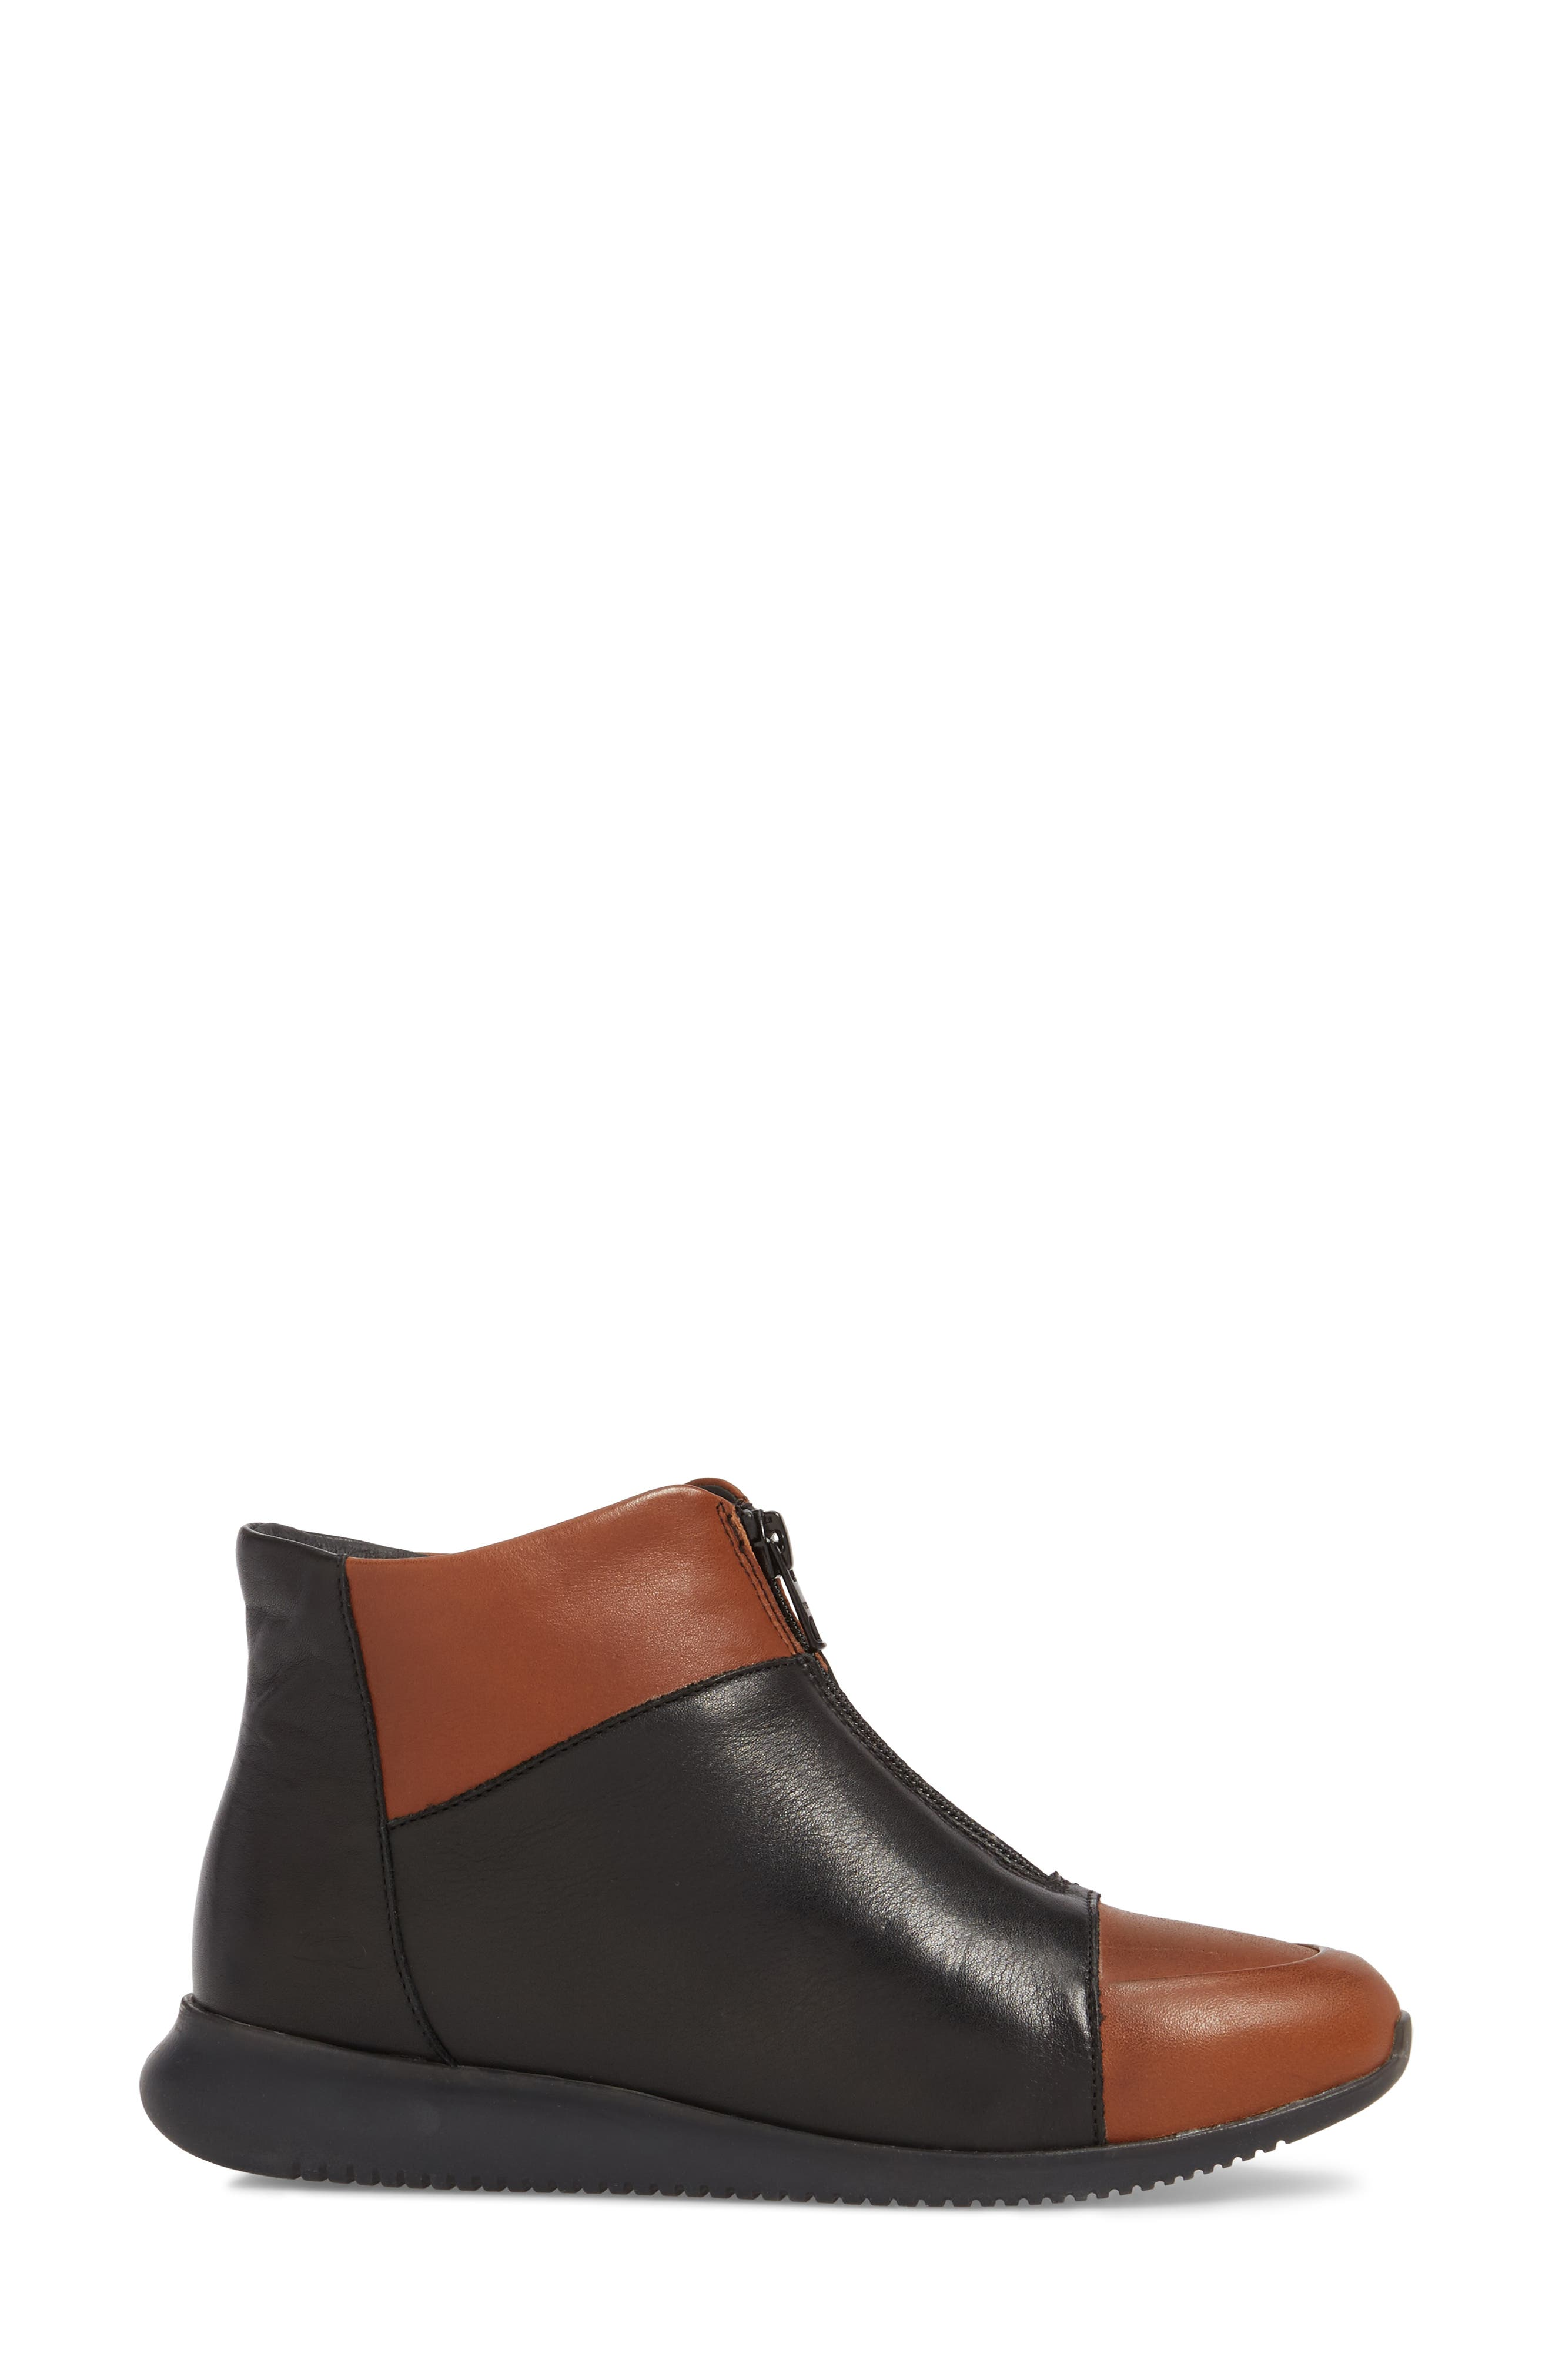 Roy Wool Lined Cap Toe Bootie,                             Alternate thumbnail 3, color,                             Cuoio/ Black Leather